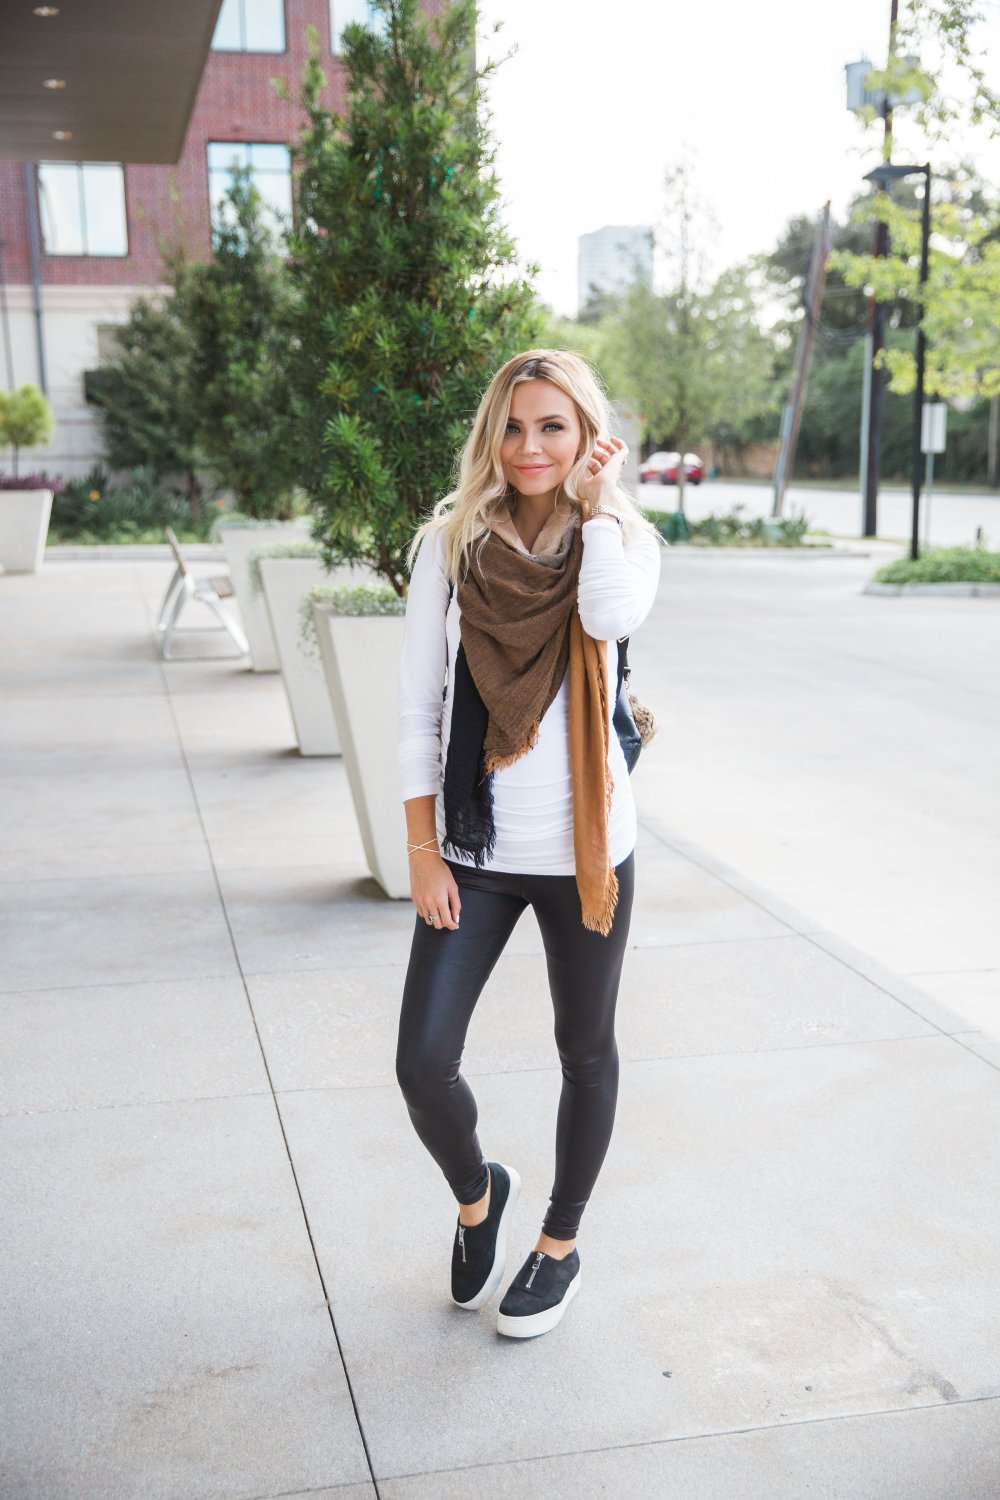 My go-to Momiform! These maternity leggings are the bomb and can be dressed up or down! This is my comfortable maternity outfit!